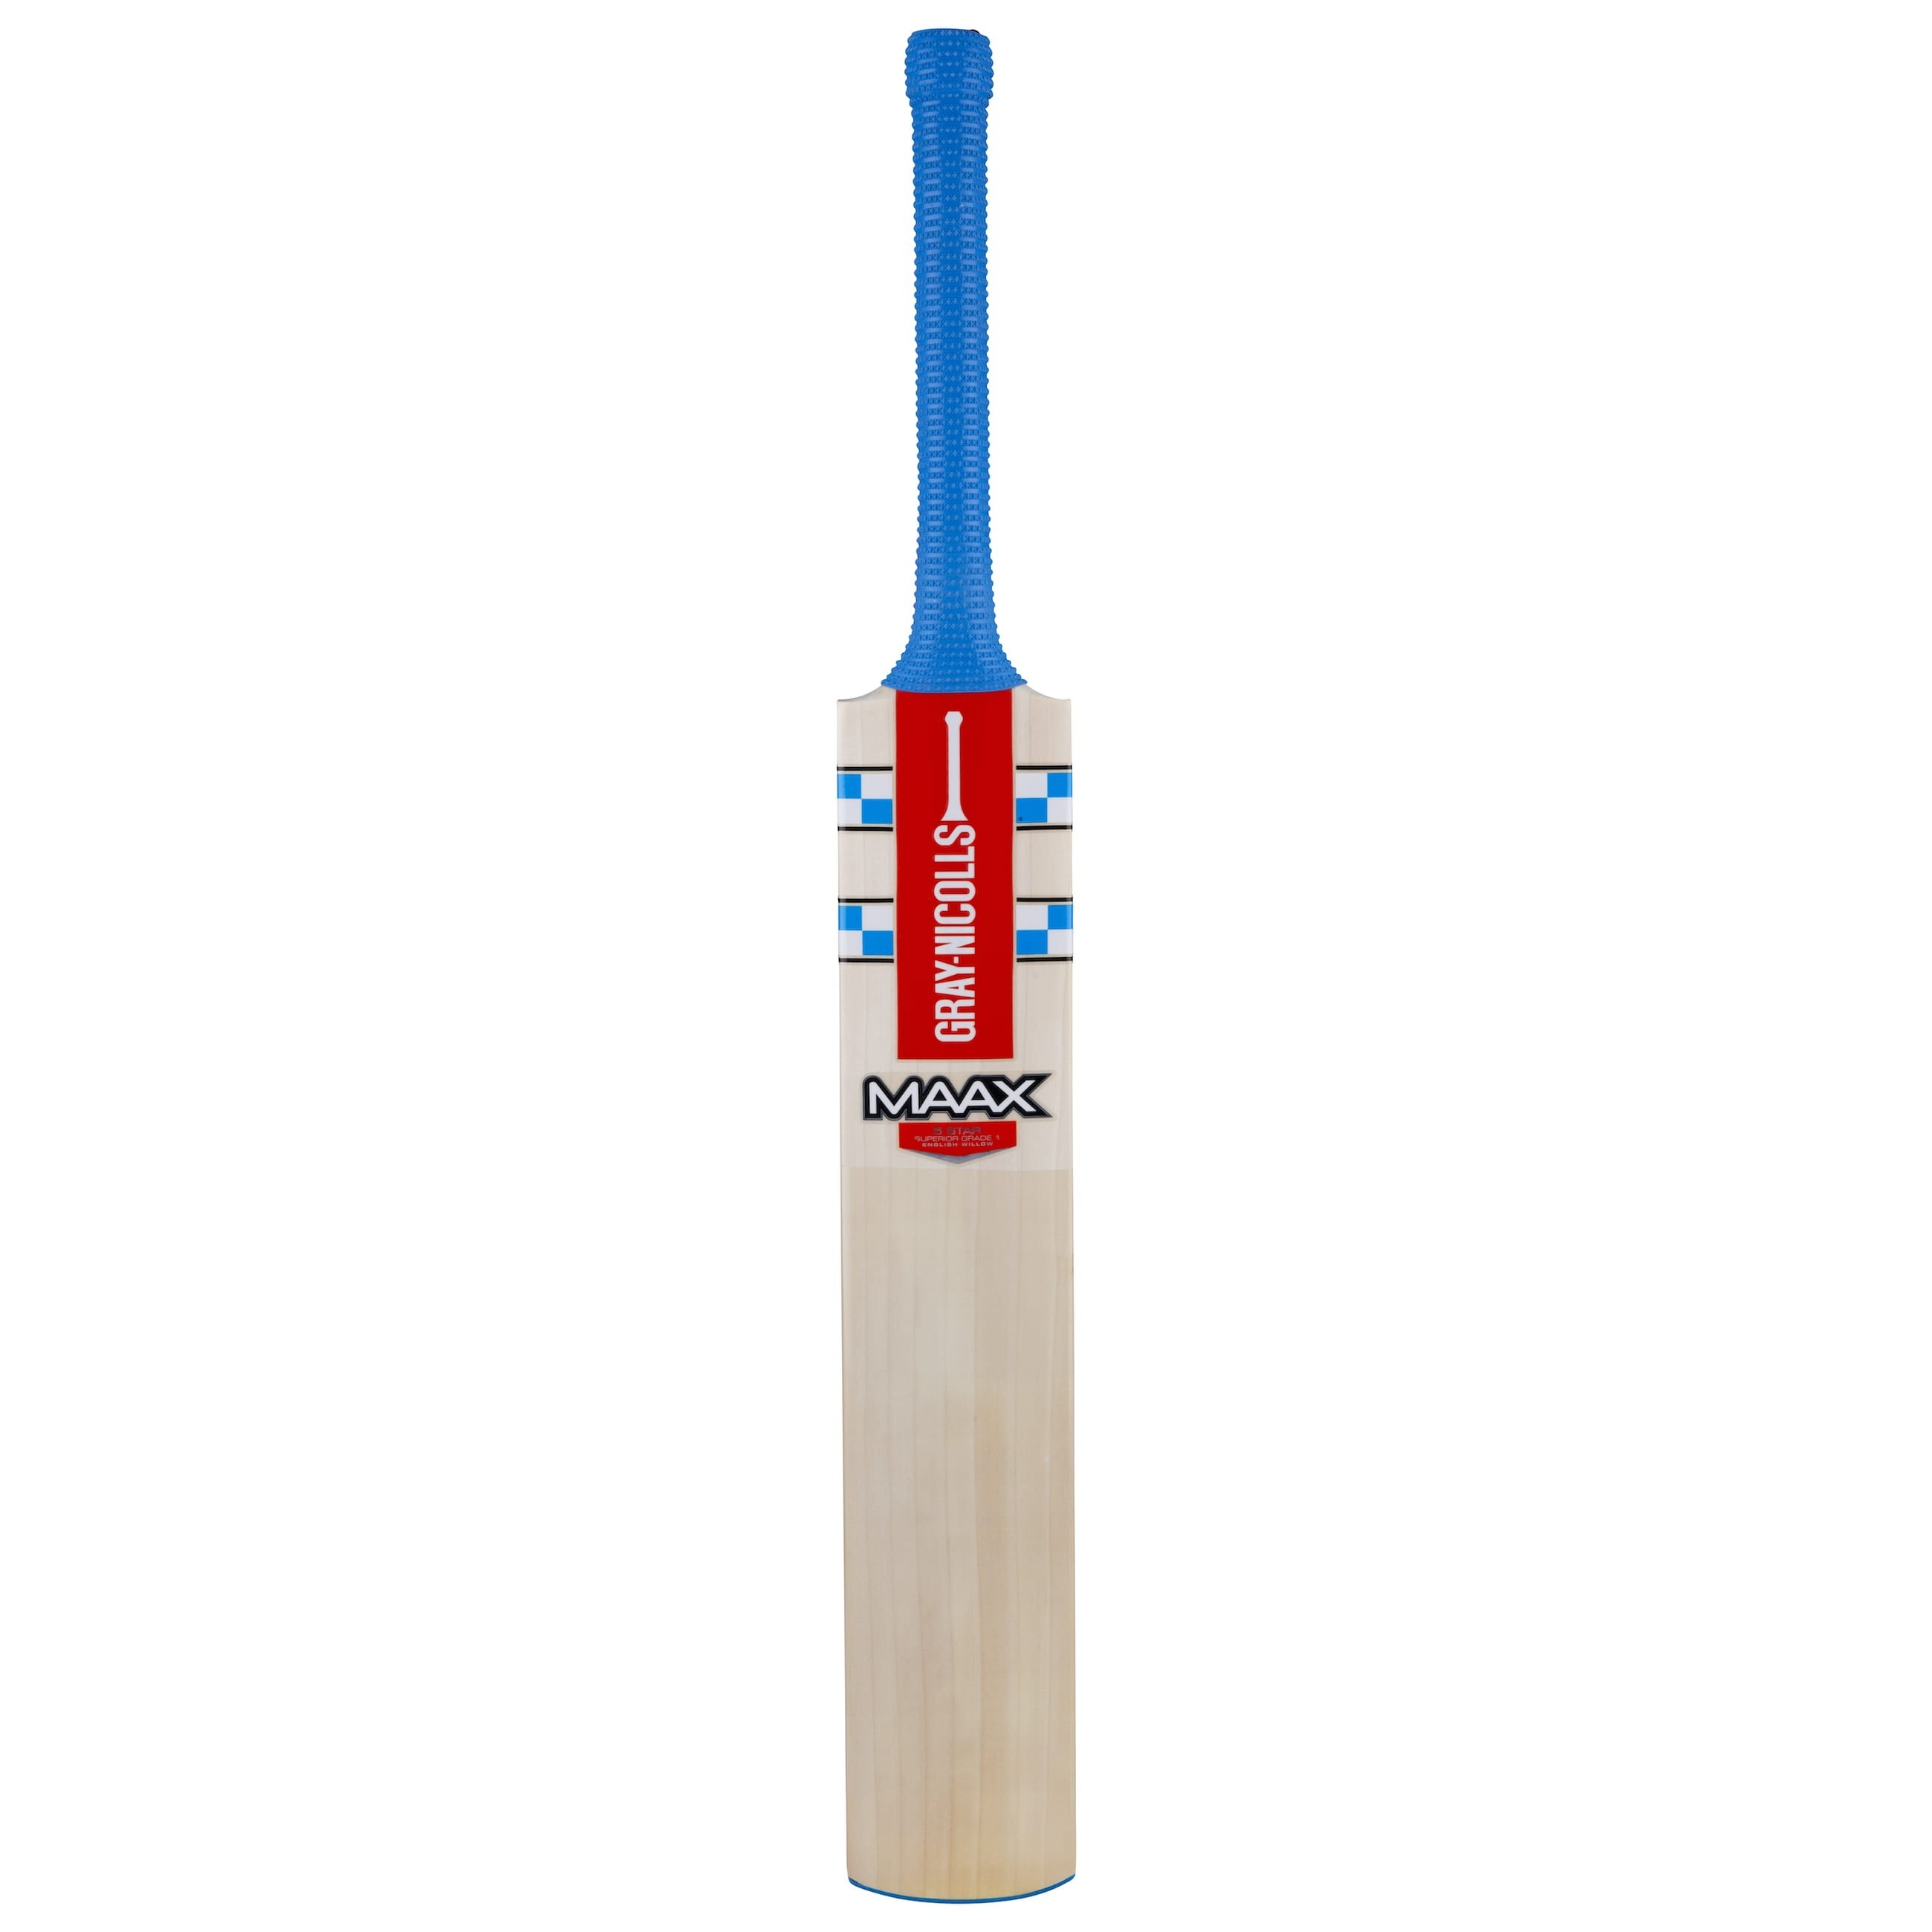 2021 Gray Nicolls Maax Blue 5 Star Cricket Bat